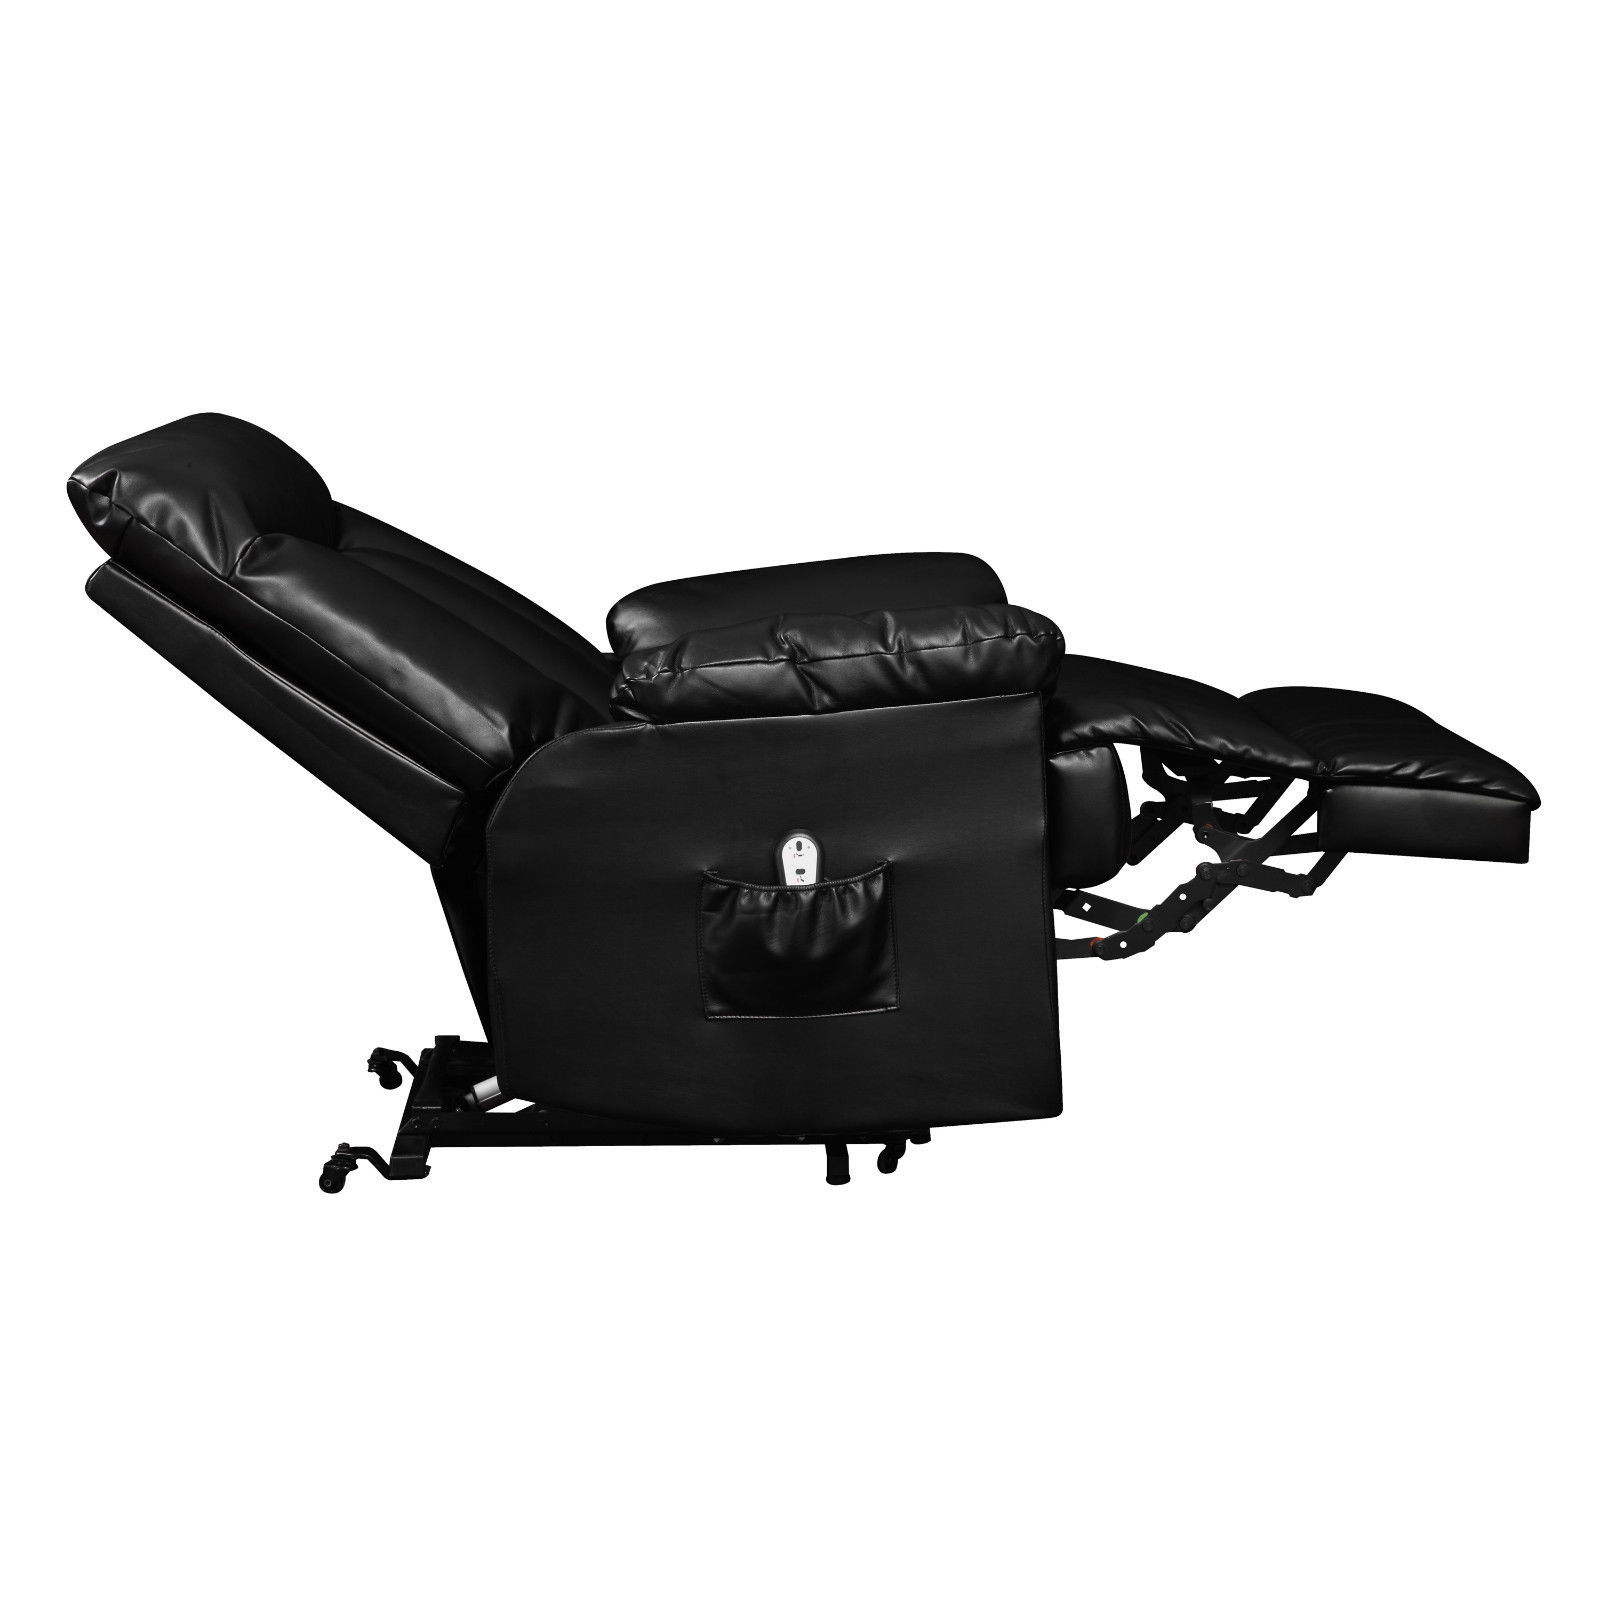 Electric Lift Chair Electric Lift Chair Recliner Black Leather Power Motion